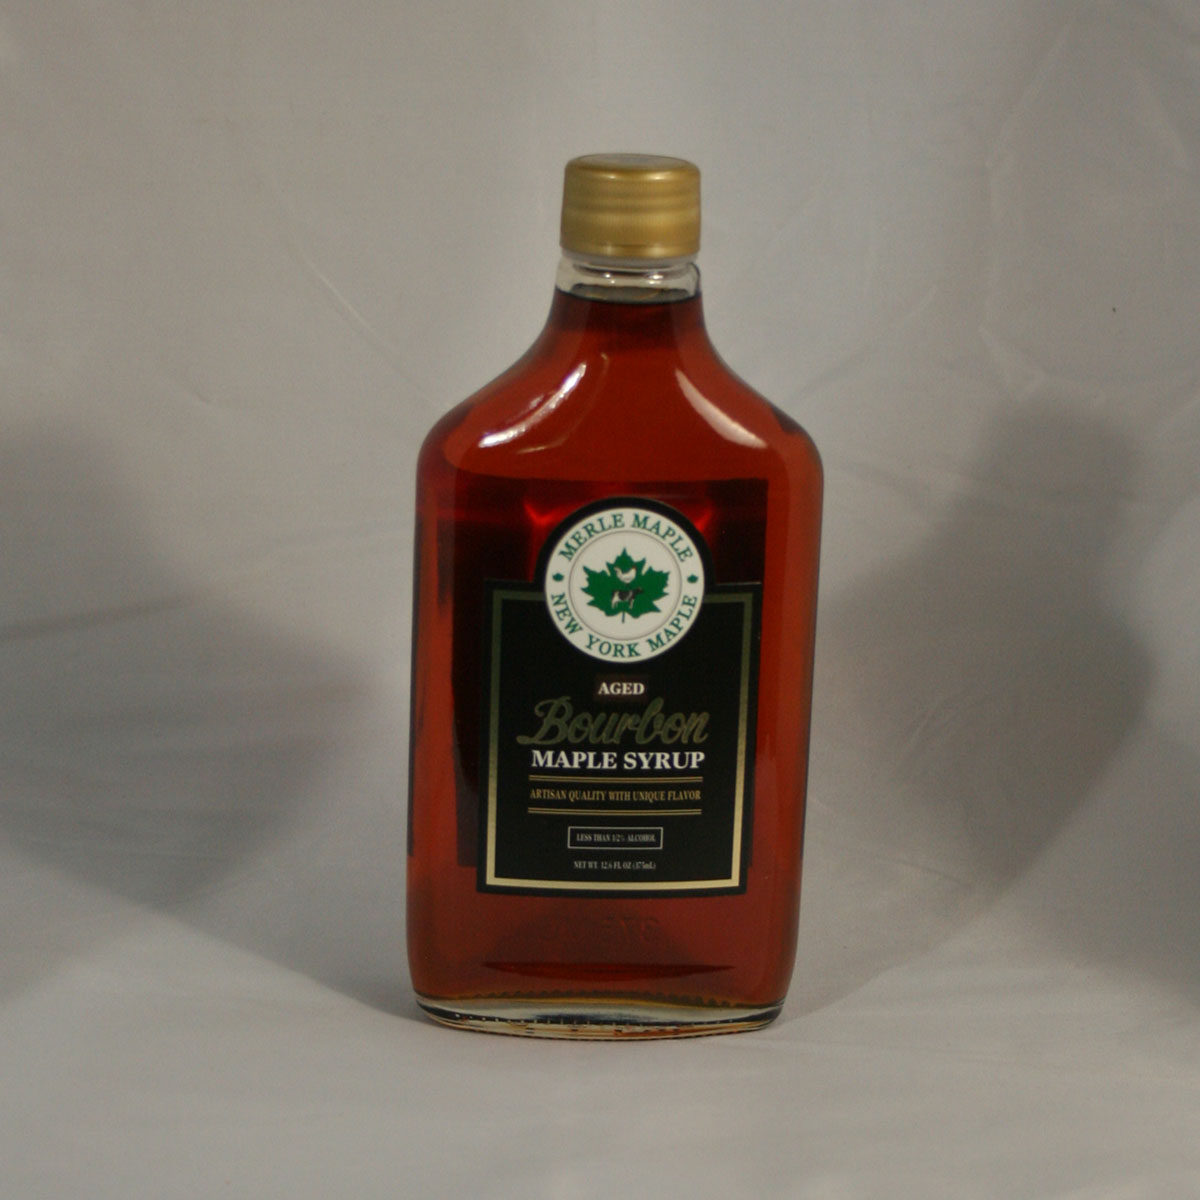 Aged Bourbon Maple Syrup in 250ml